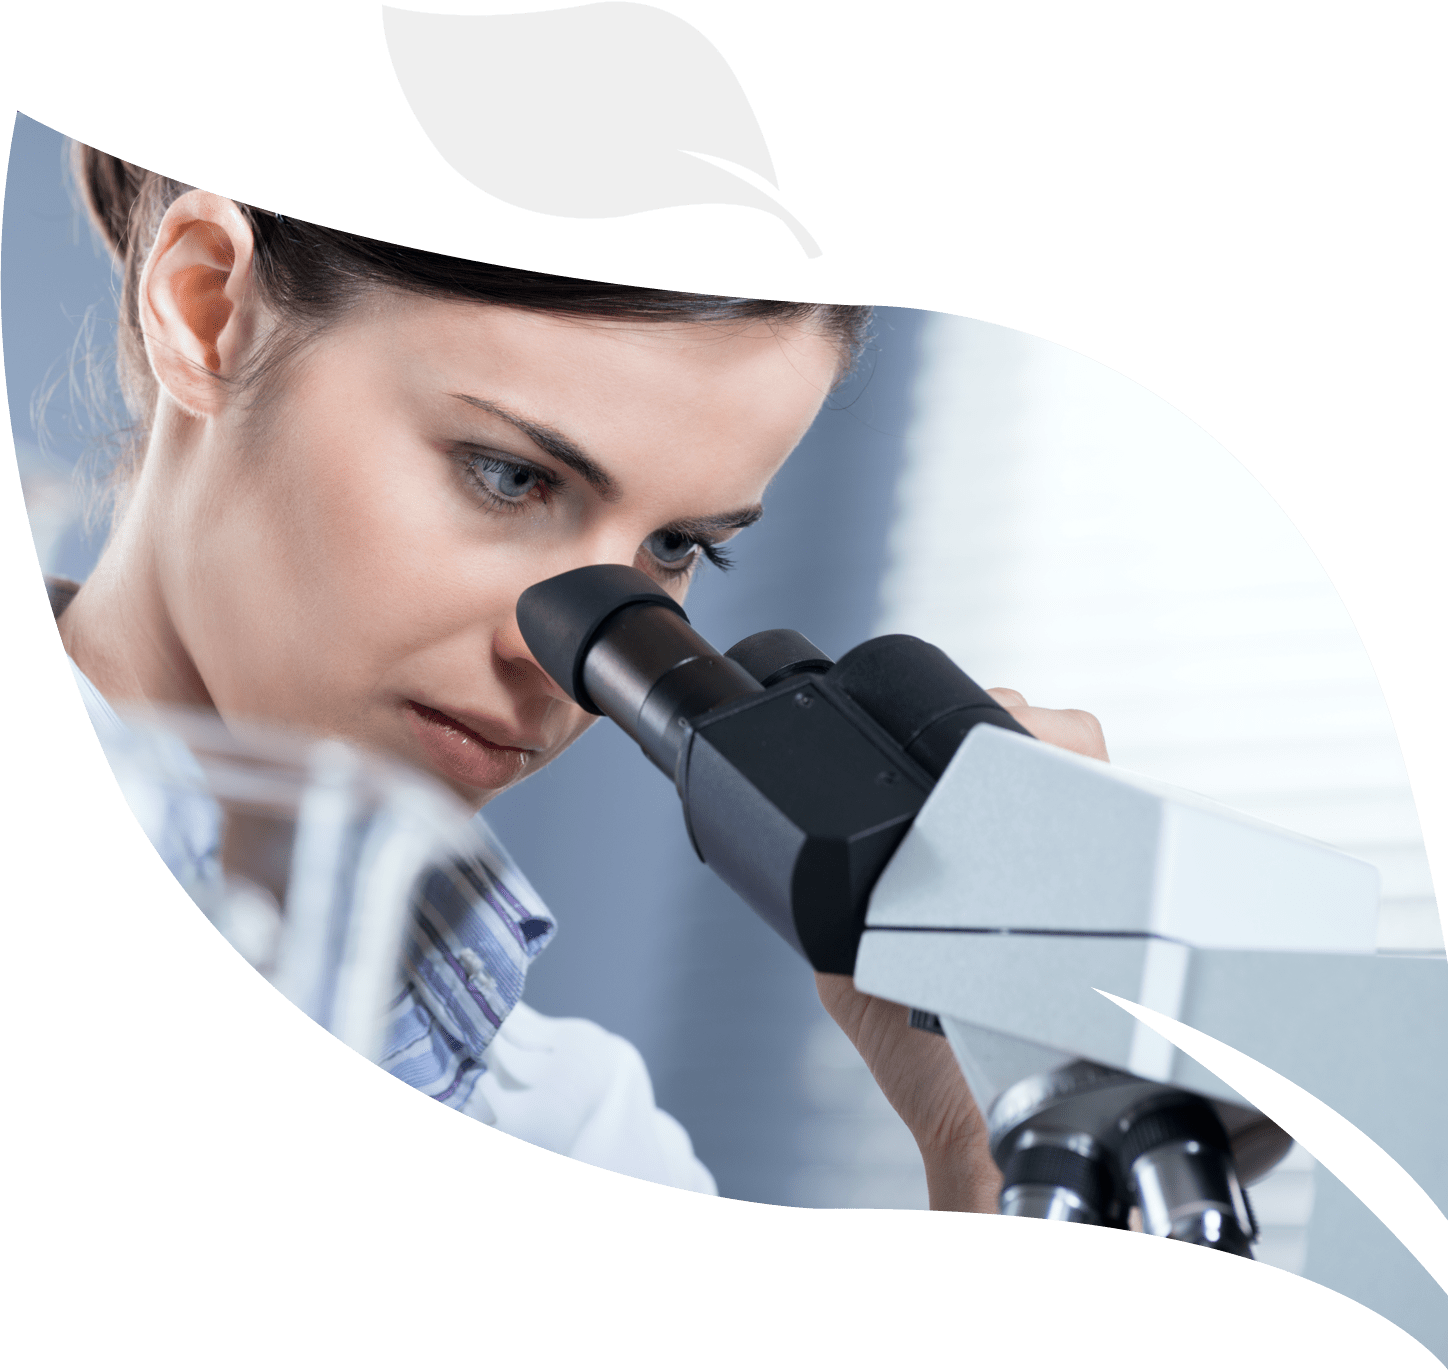 a person working in biotechnology using a microscope in a laboratory environment